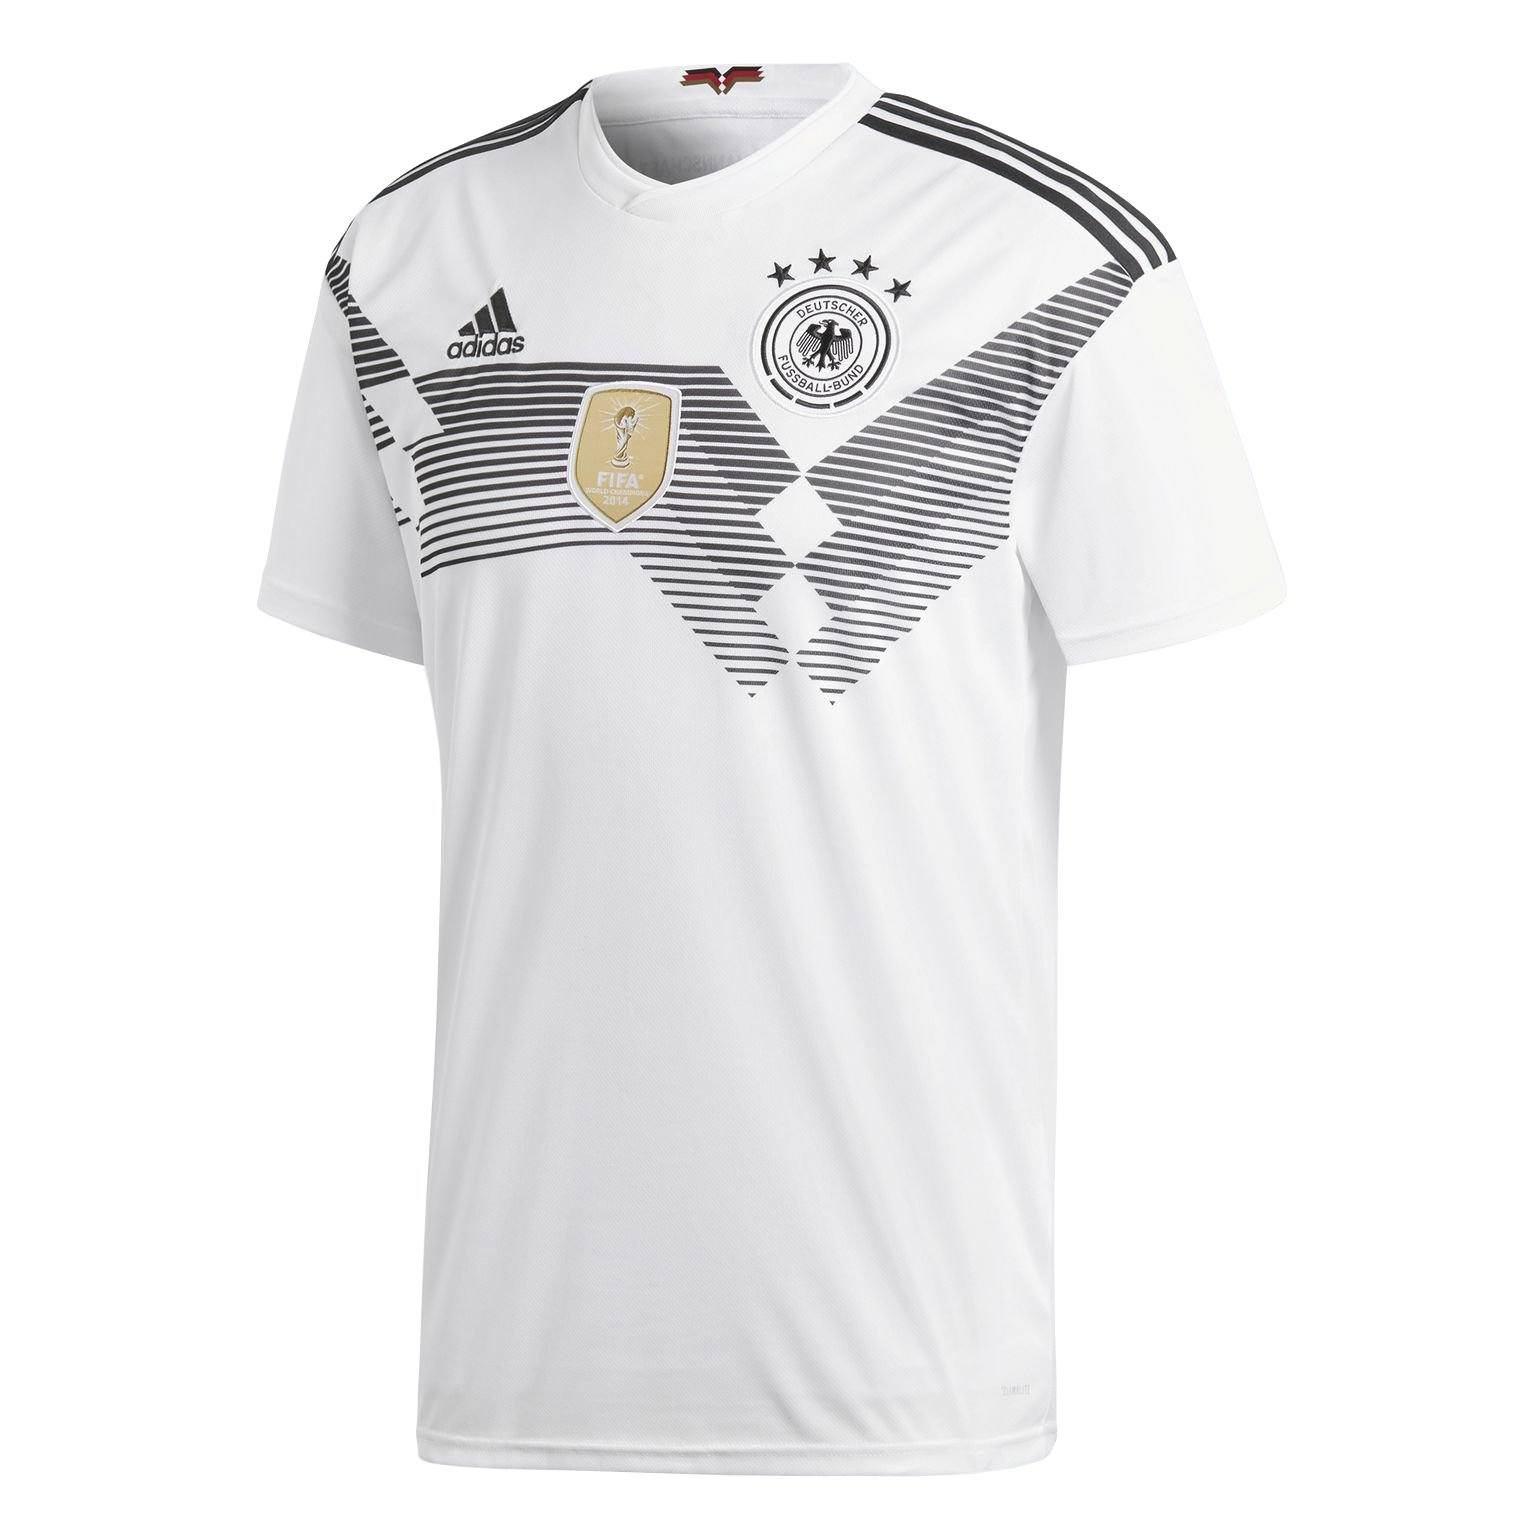 adidas Men's Germany Home Jersey | BR7843 Licensed-Apparel adidas Small White/Black